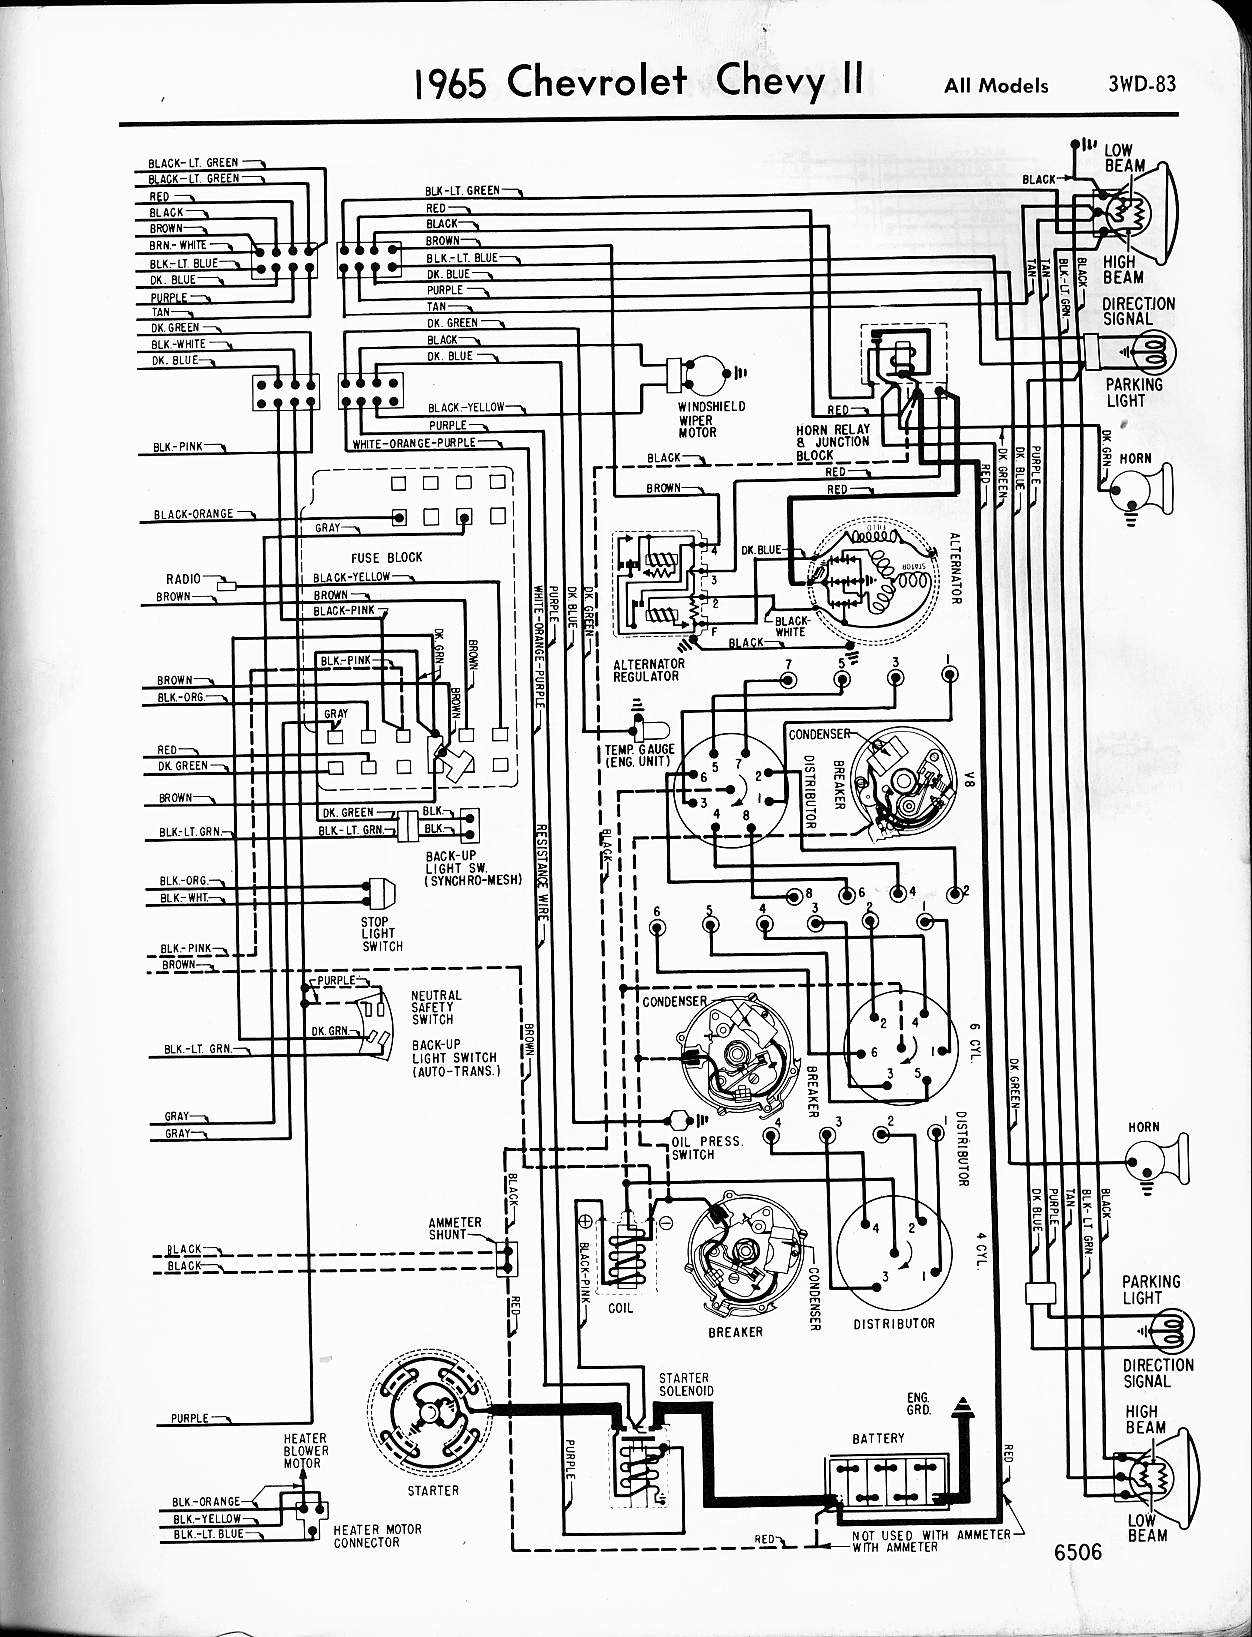 Mwirechev Wd on 57 Chevy Wiring Harness Diagram